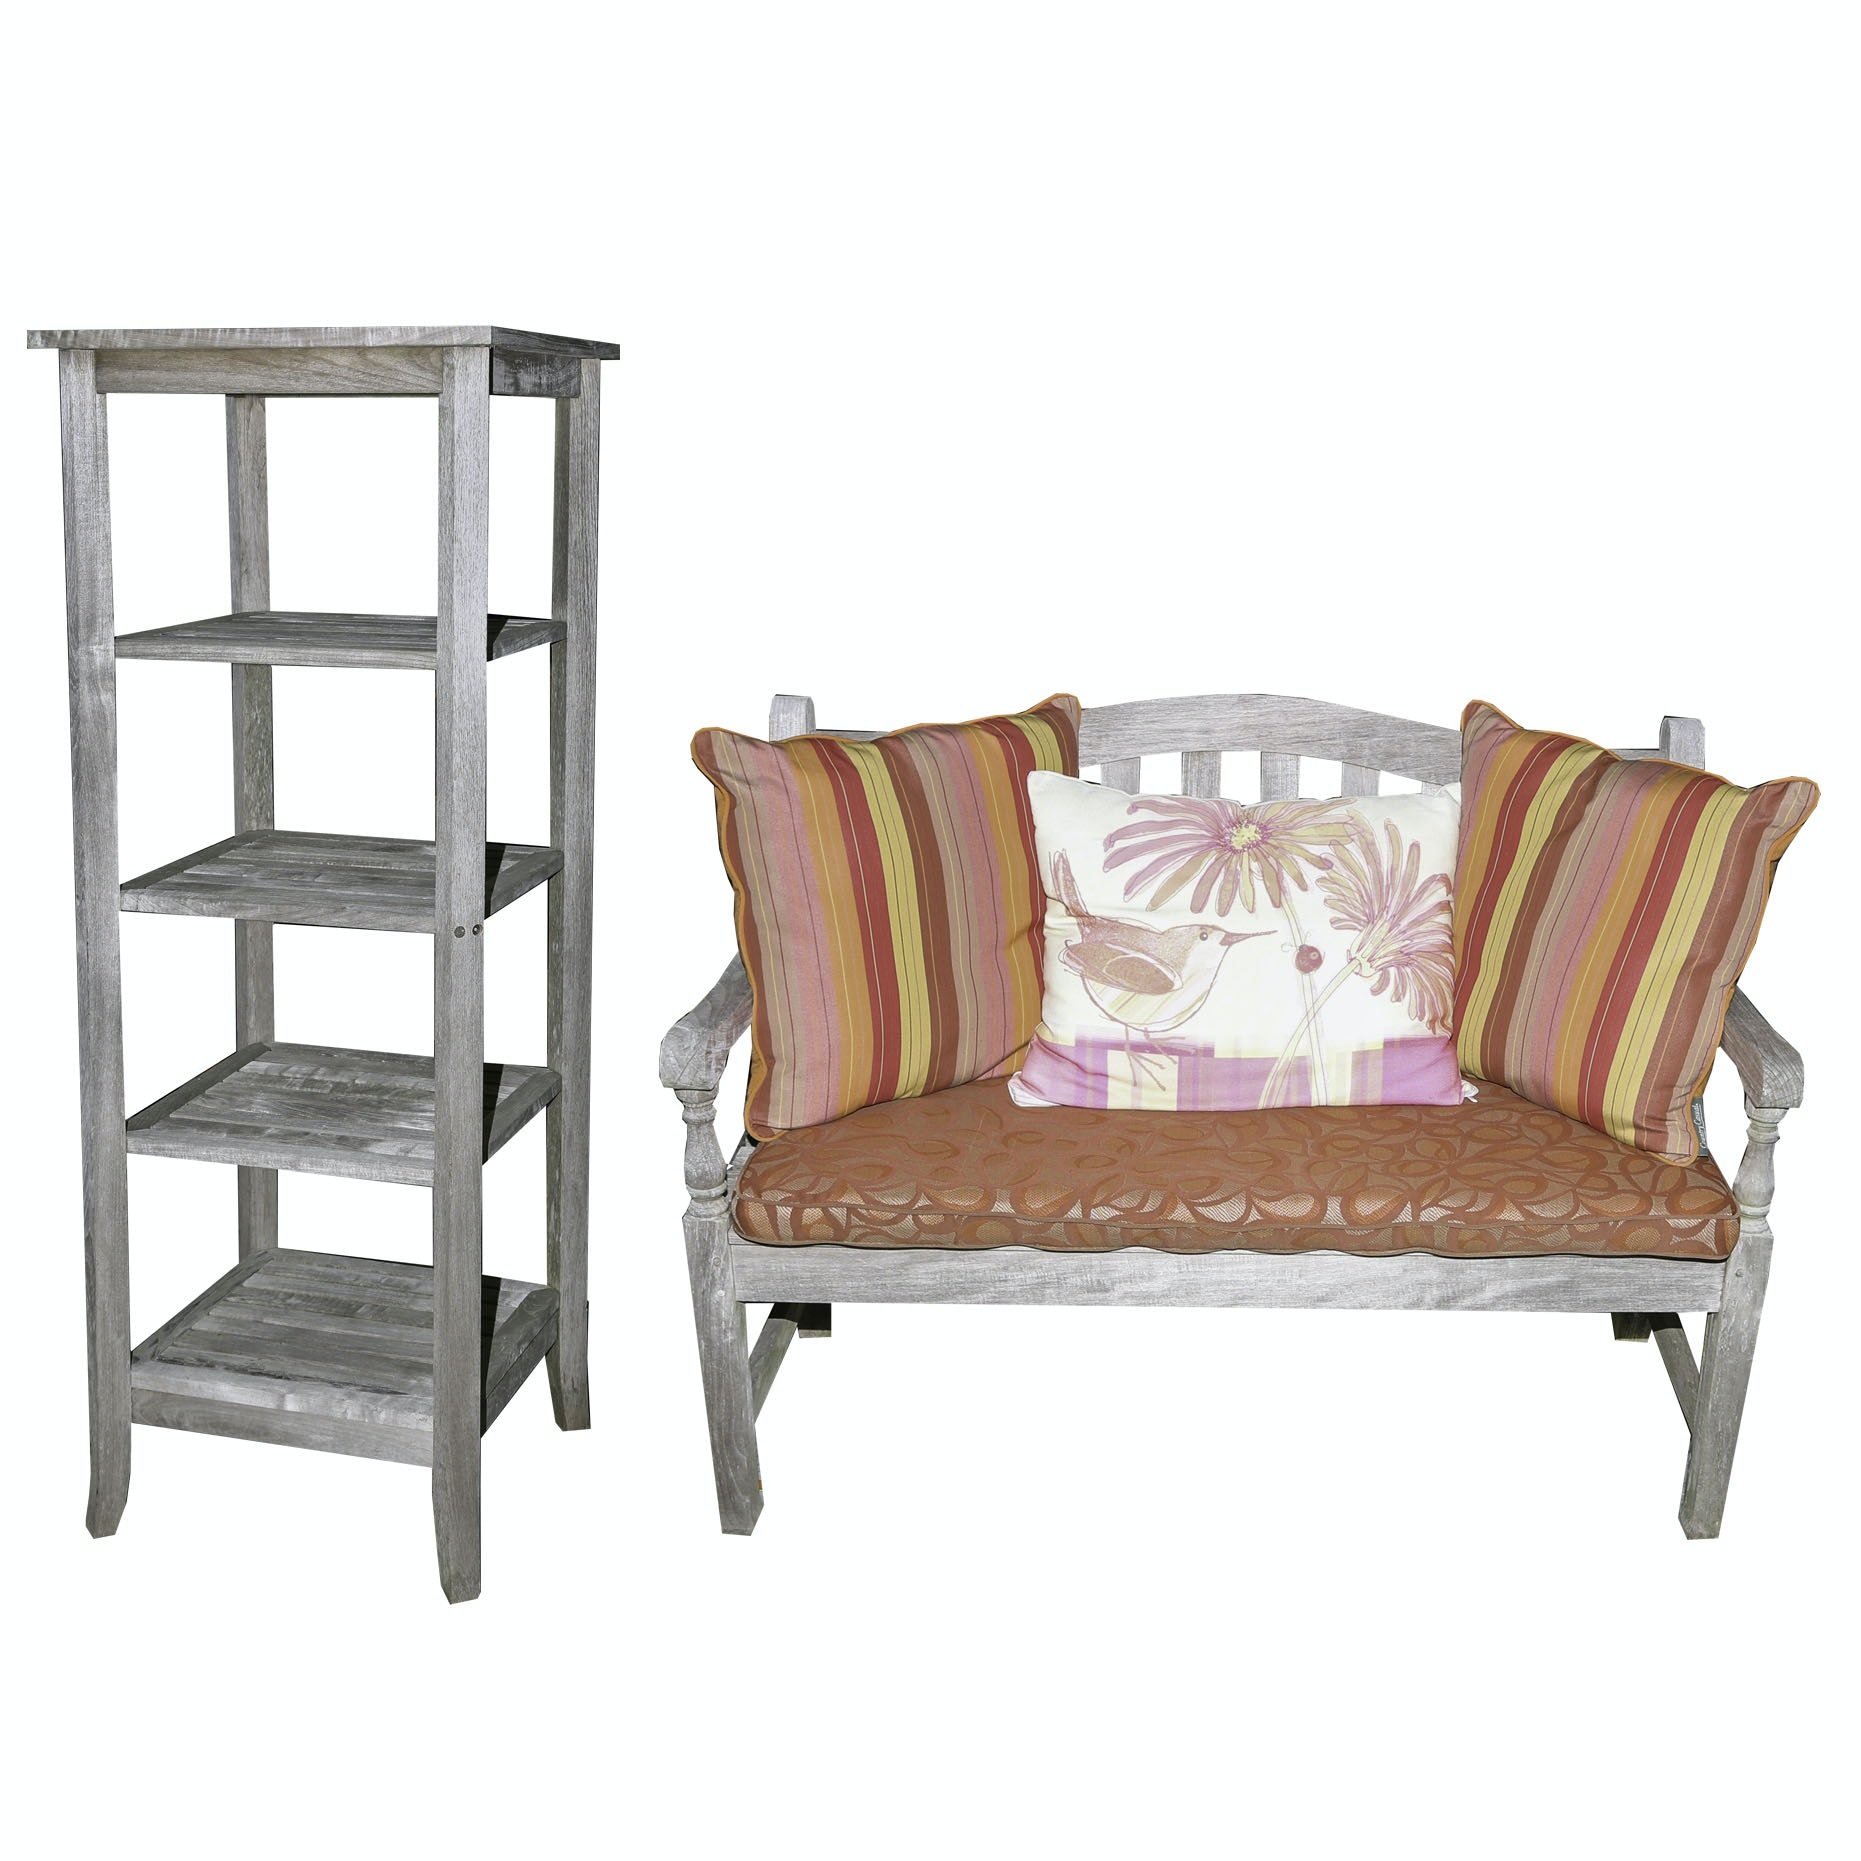 Barlow-Tyrie Teak Patio Settee and Country Casual Étagère